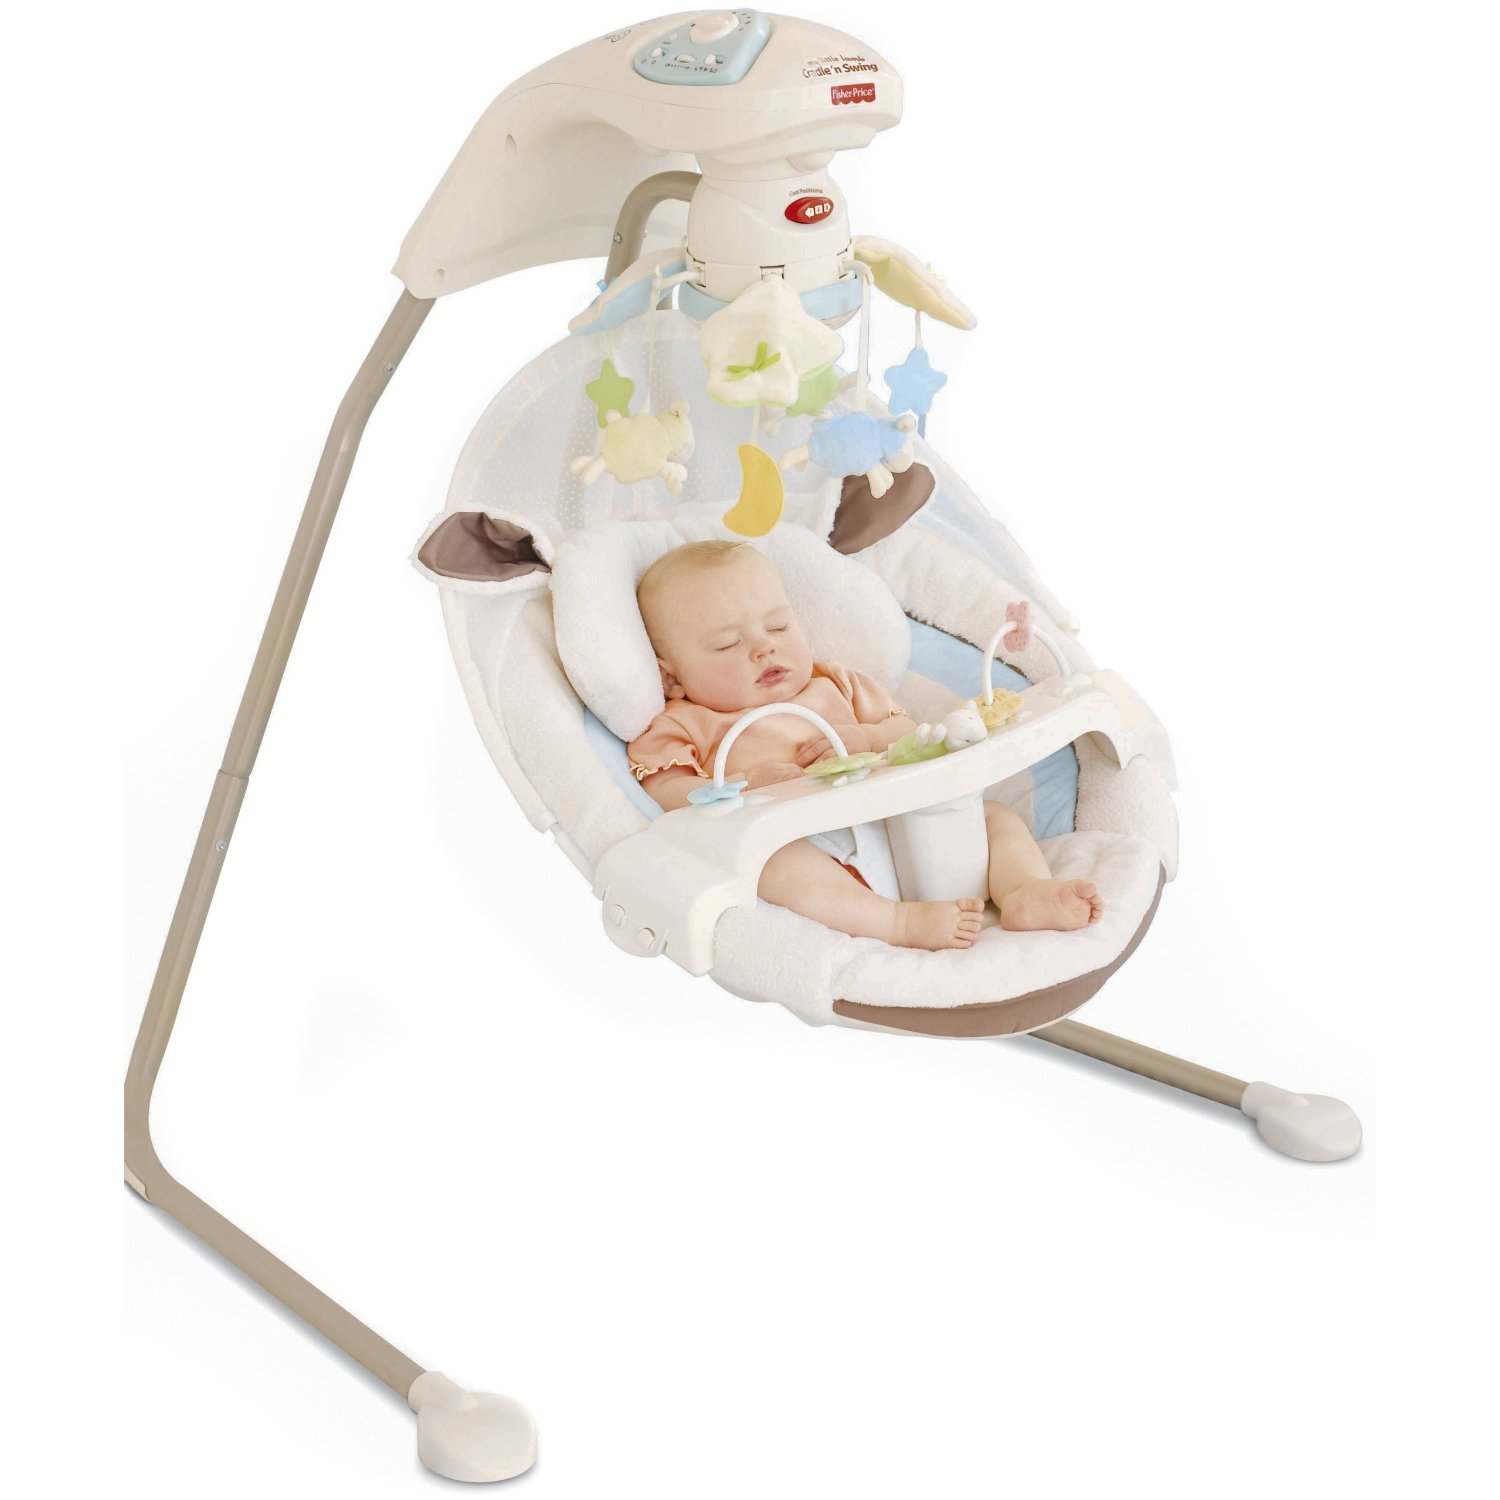 Have Fisher price swinging bassinet